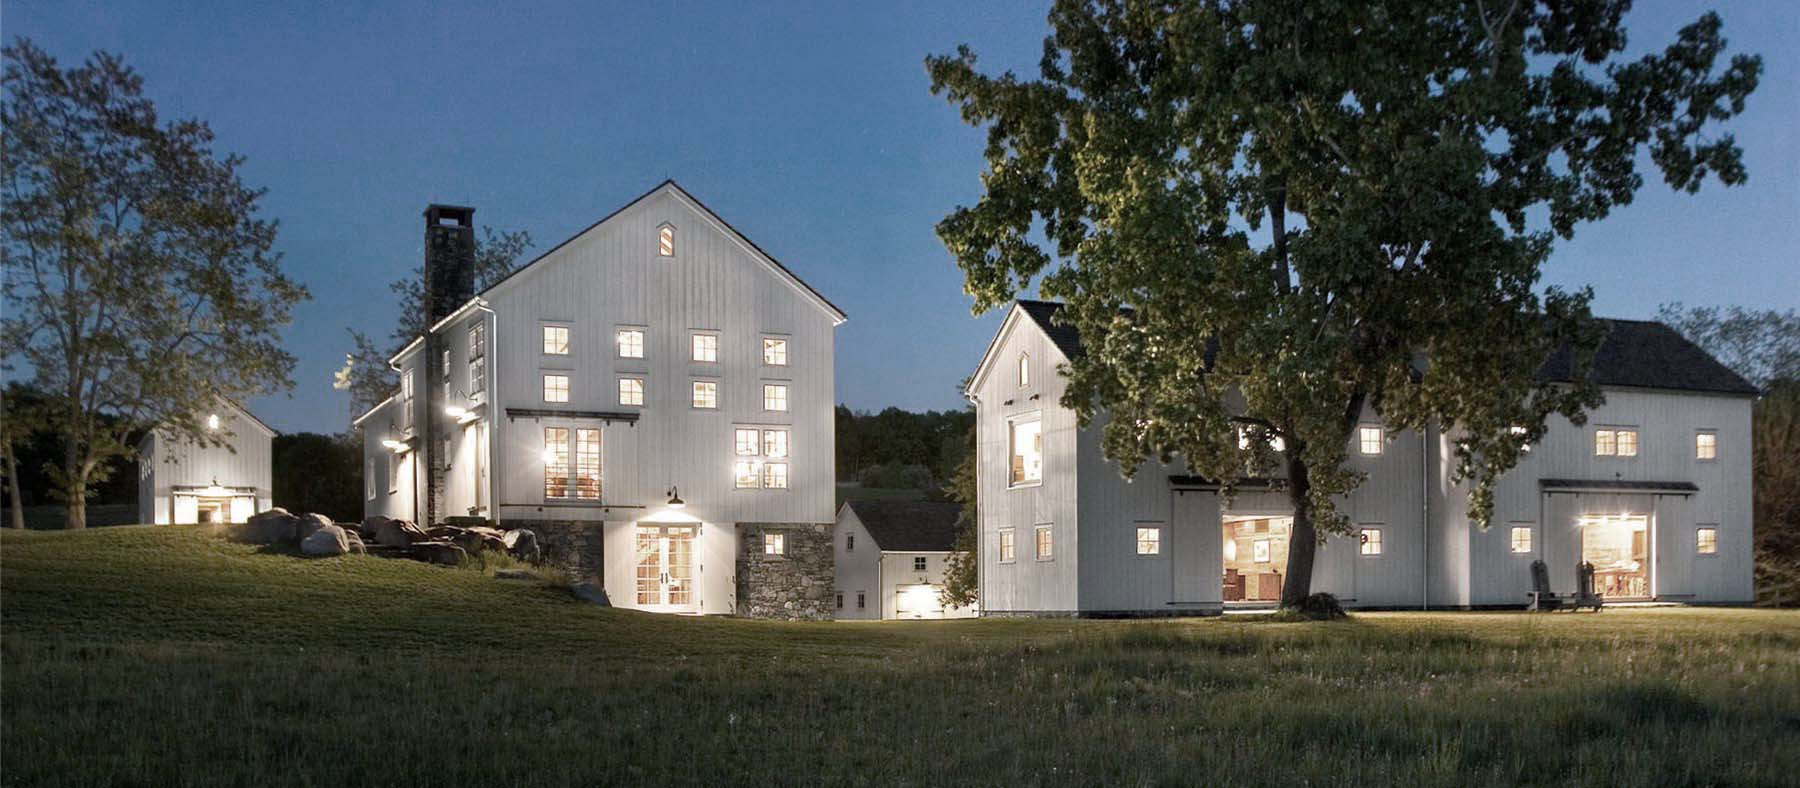 Advantages Of A Multigenerational Home Beautiful custom home in the country side farmhouse